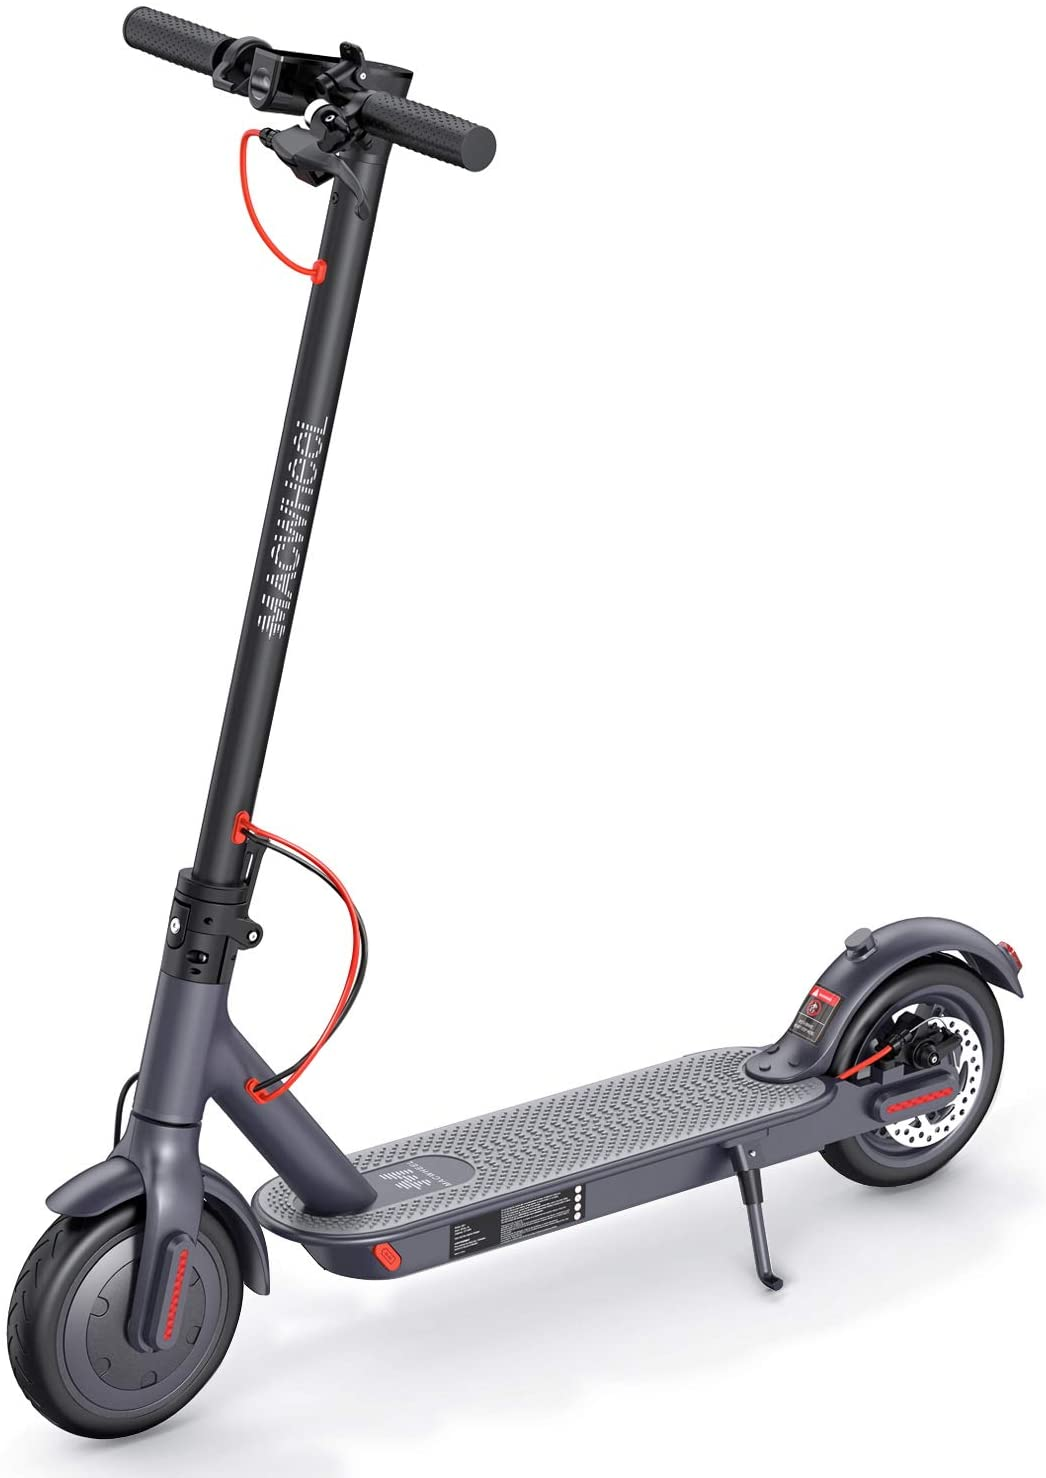 Macwheel MX1 electric scooter review